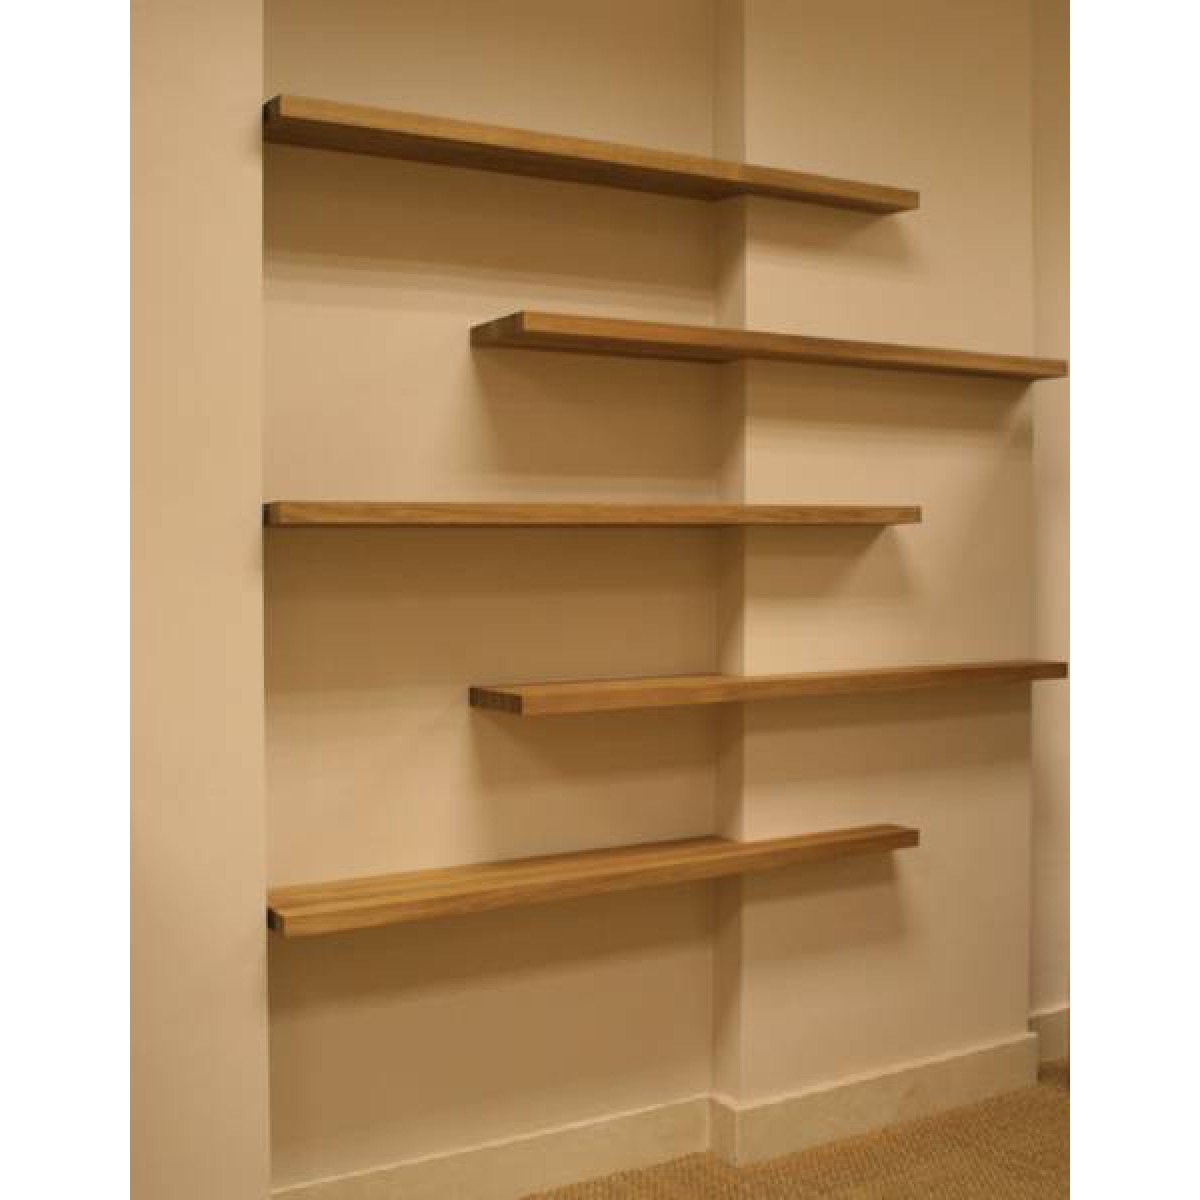 15 collection of oak wall shelves.